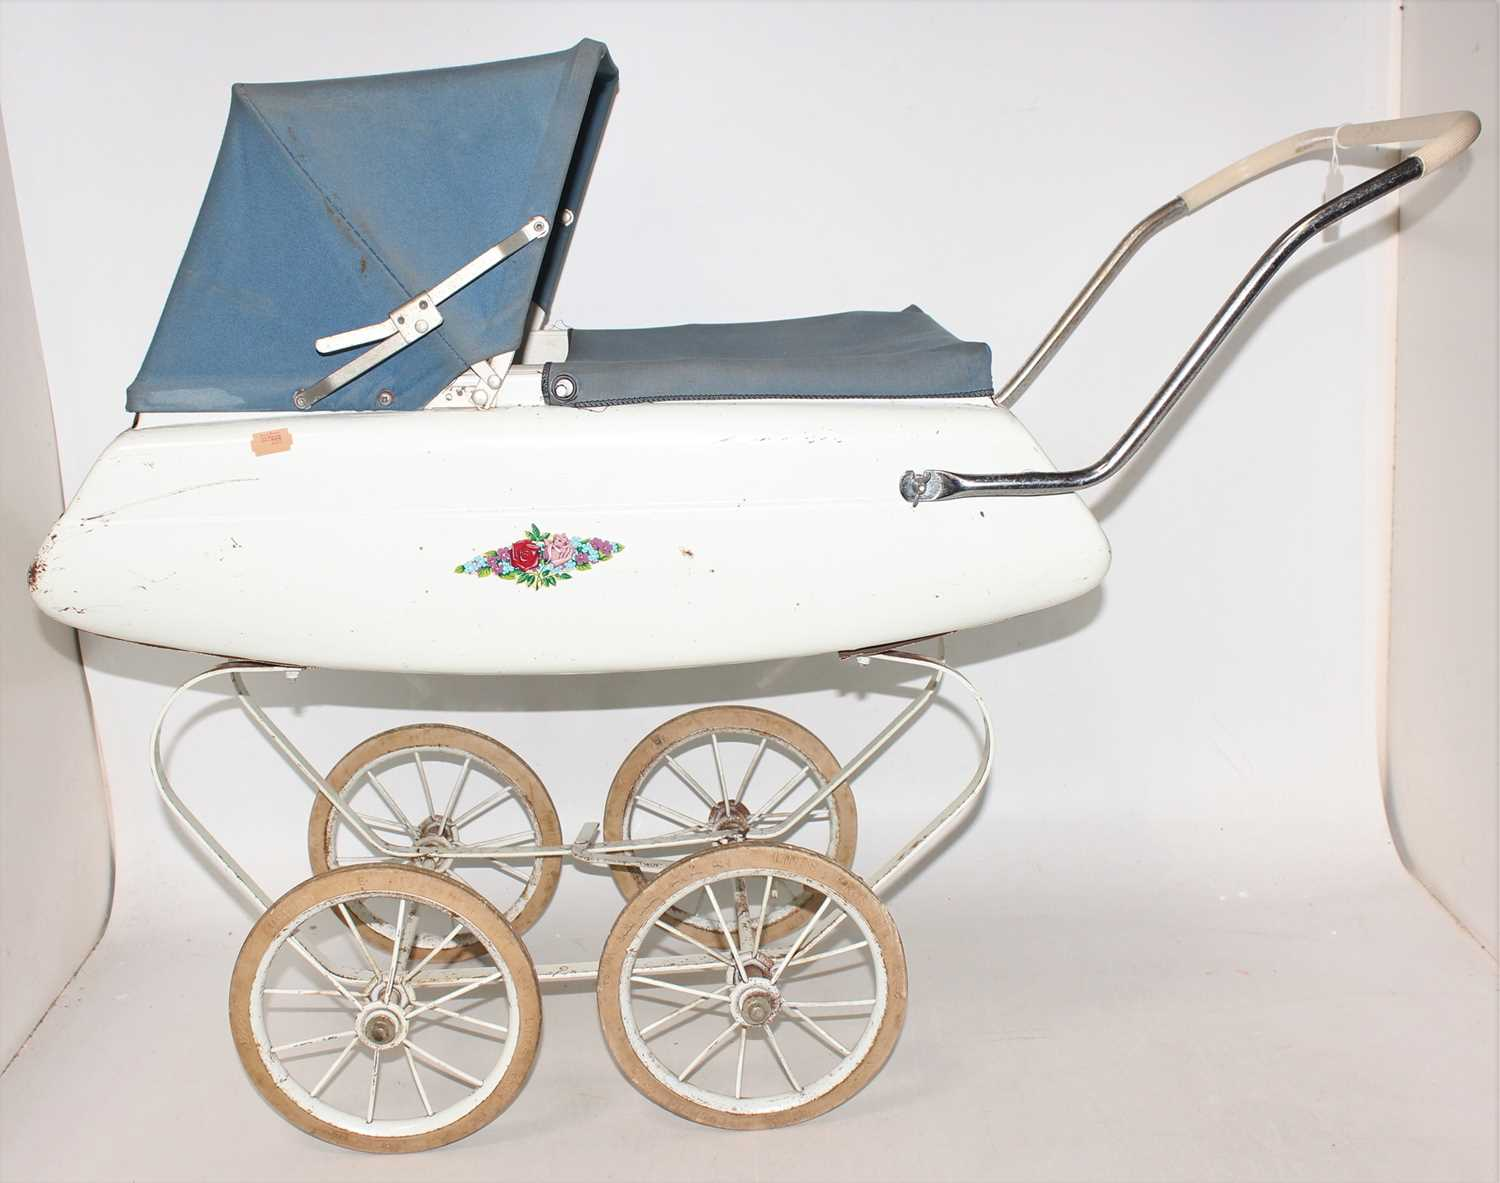 Triang dolls pram, circa mid 1960s in good condition for age, complete with original cover and hood.